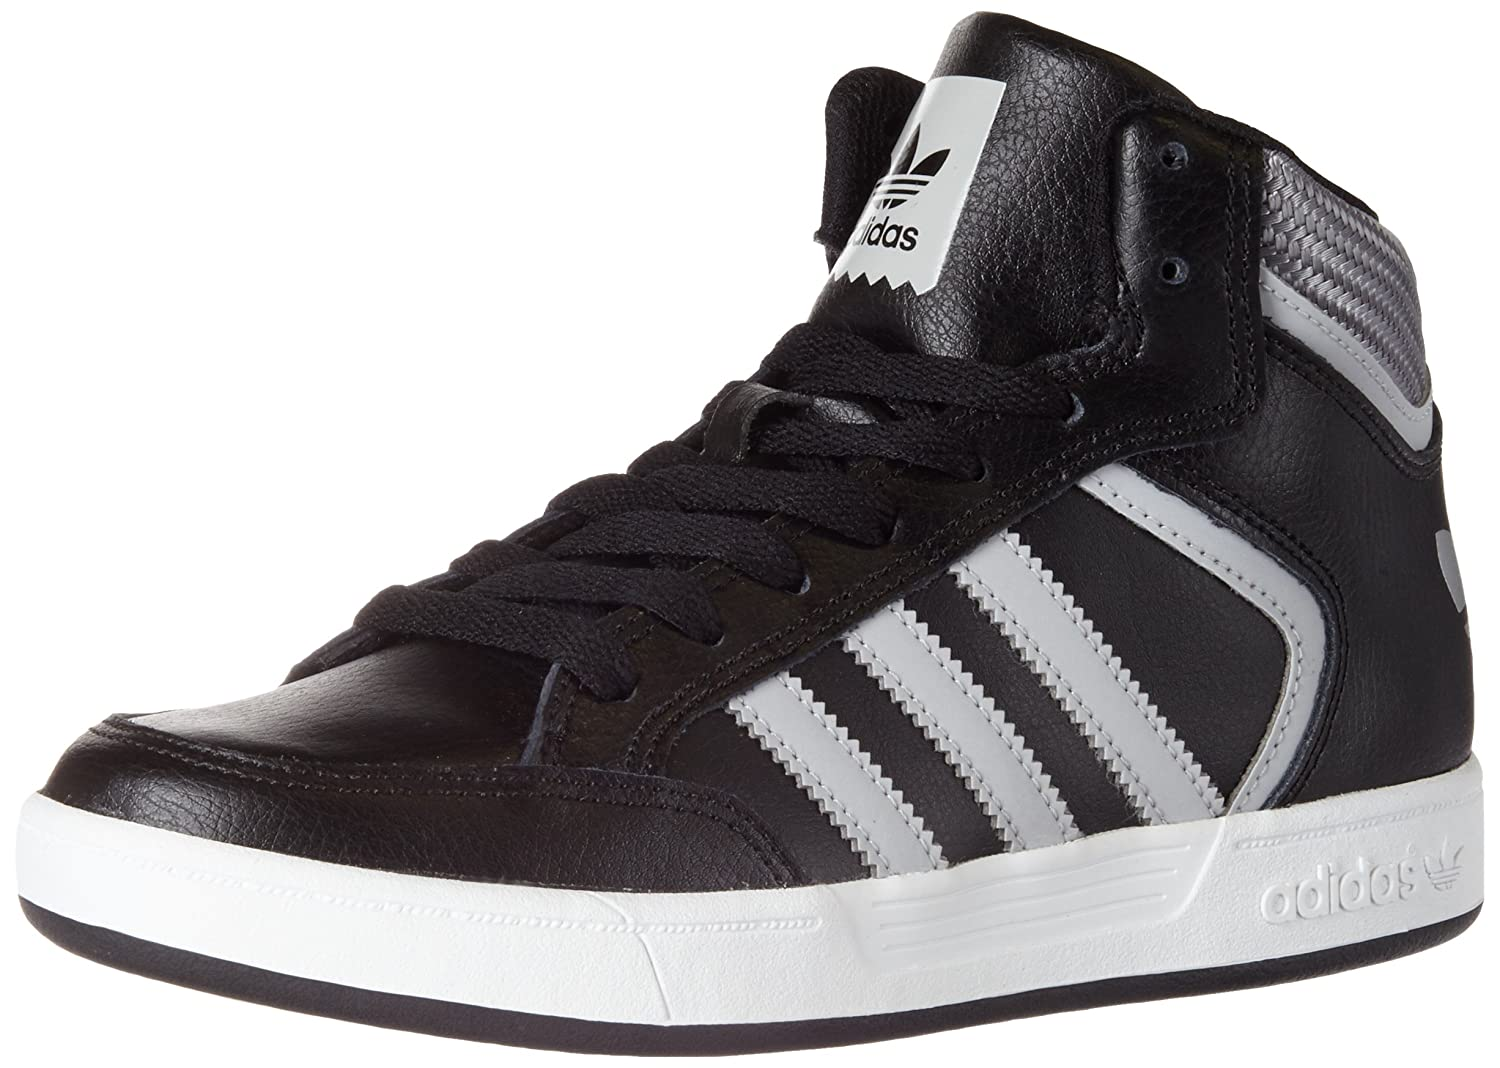 reputable site 1c96a 8aa7e adidas Varial Mid, Chaussures de Skate Homme adidas Originals BY4059